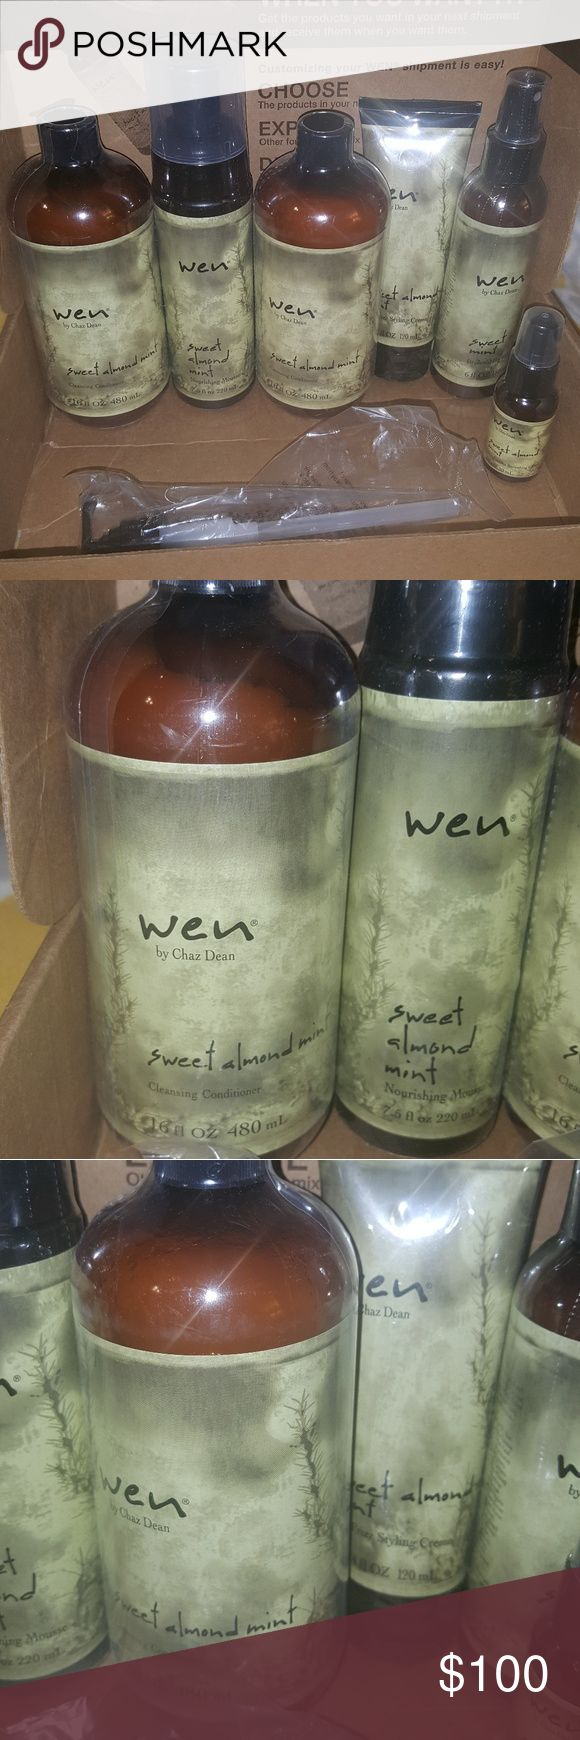 WEN by Chaz Dean Brand New Full Size Brand New WEN hair care products. $135.00 in product. 2 16oz cleansing conditioners. 1 7.5oz mousse, 1 4oz Anti Frizz styling cream, 1 oz straightening smoothing gloss, and 1 6oz replenishing  treatment mist and 1 pump. All sealed and bend new. wen Accessories Hair Accessories